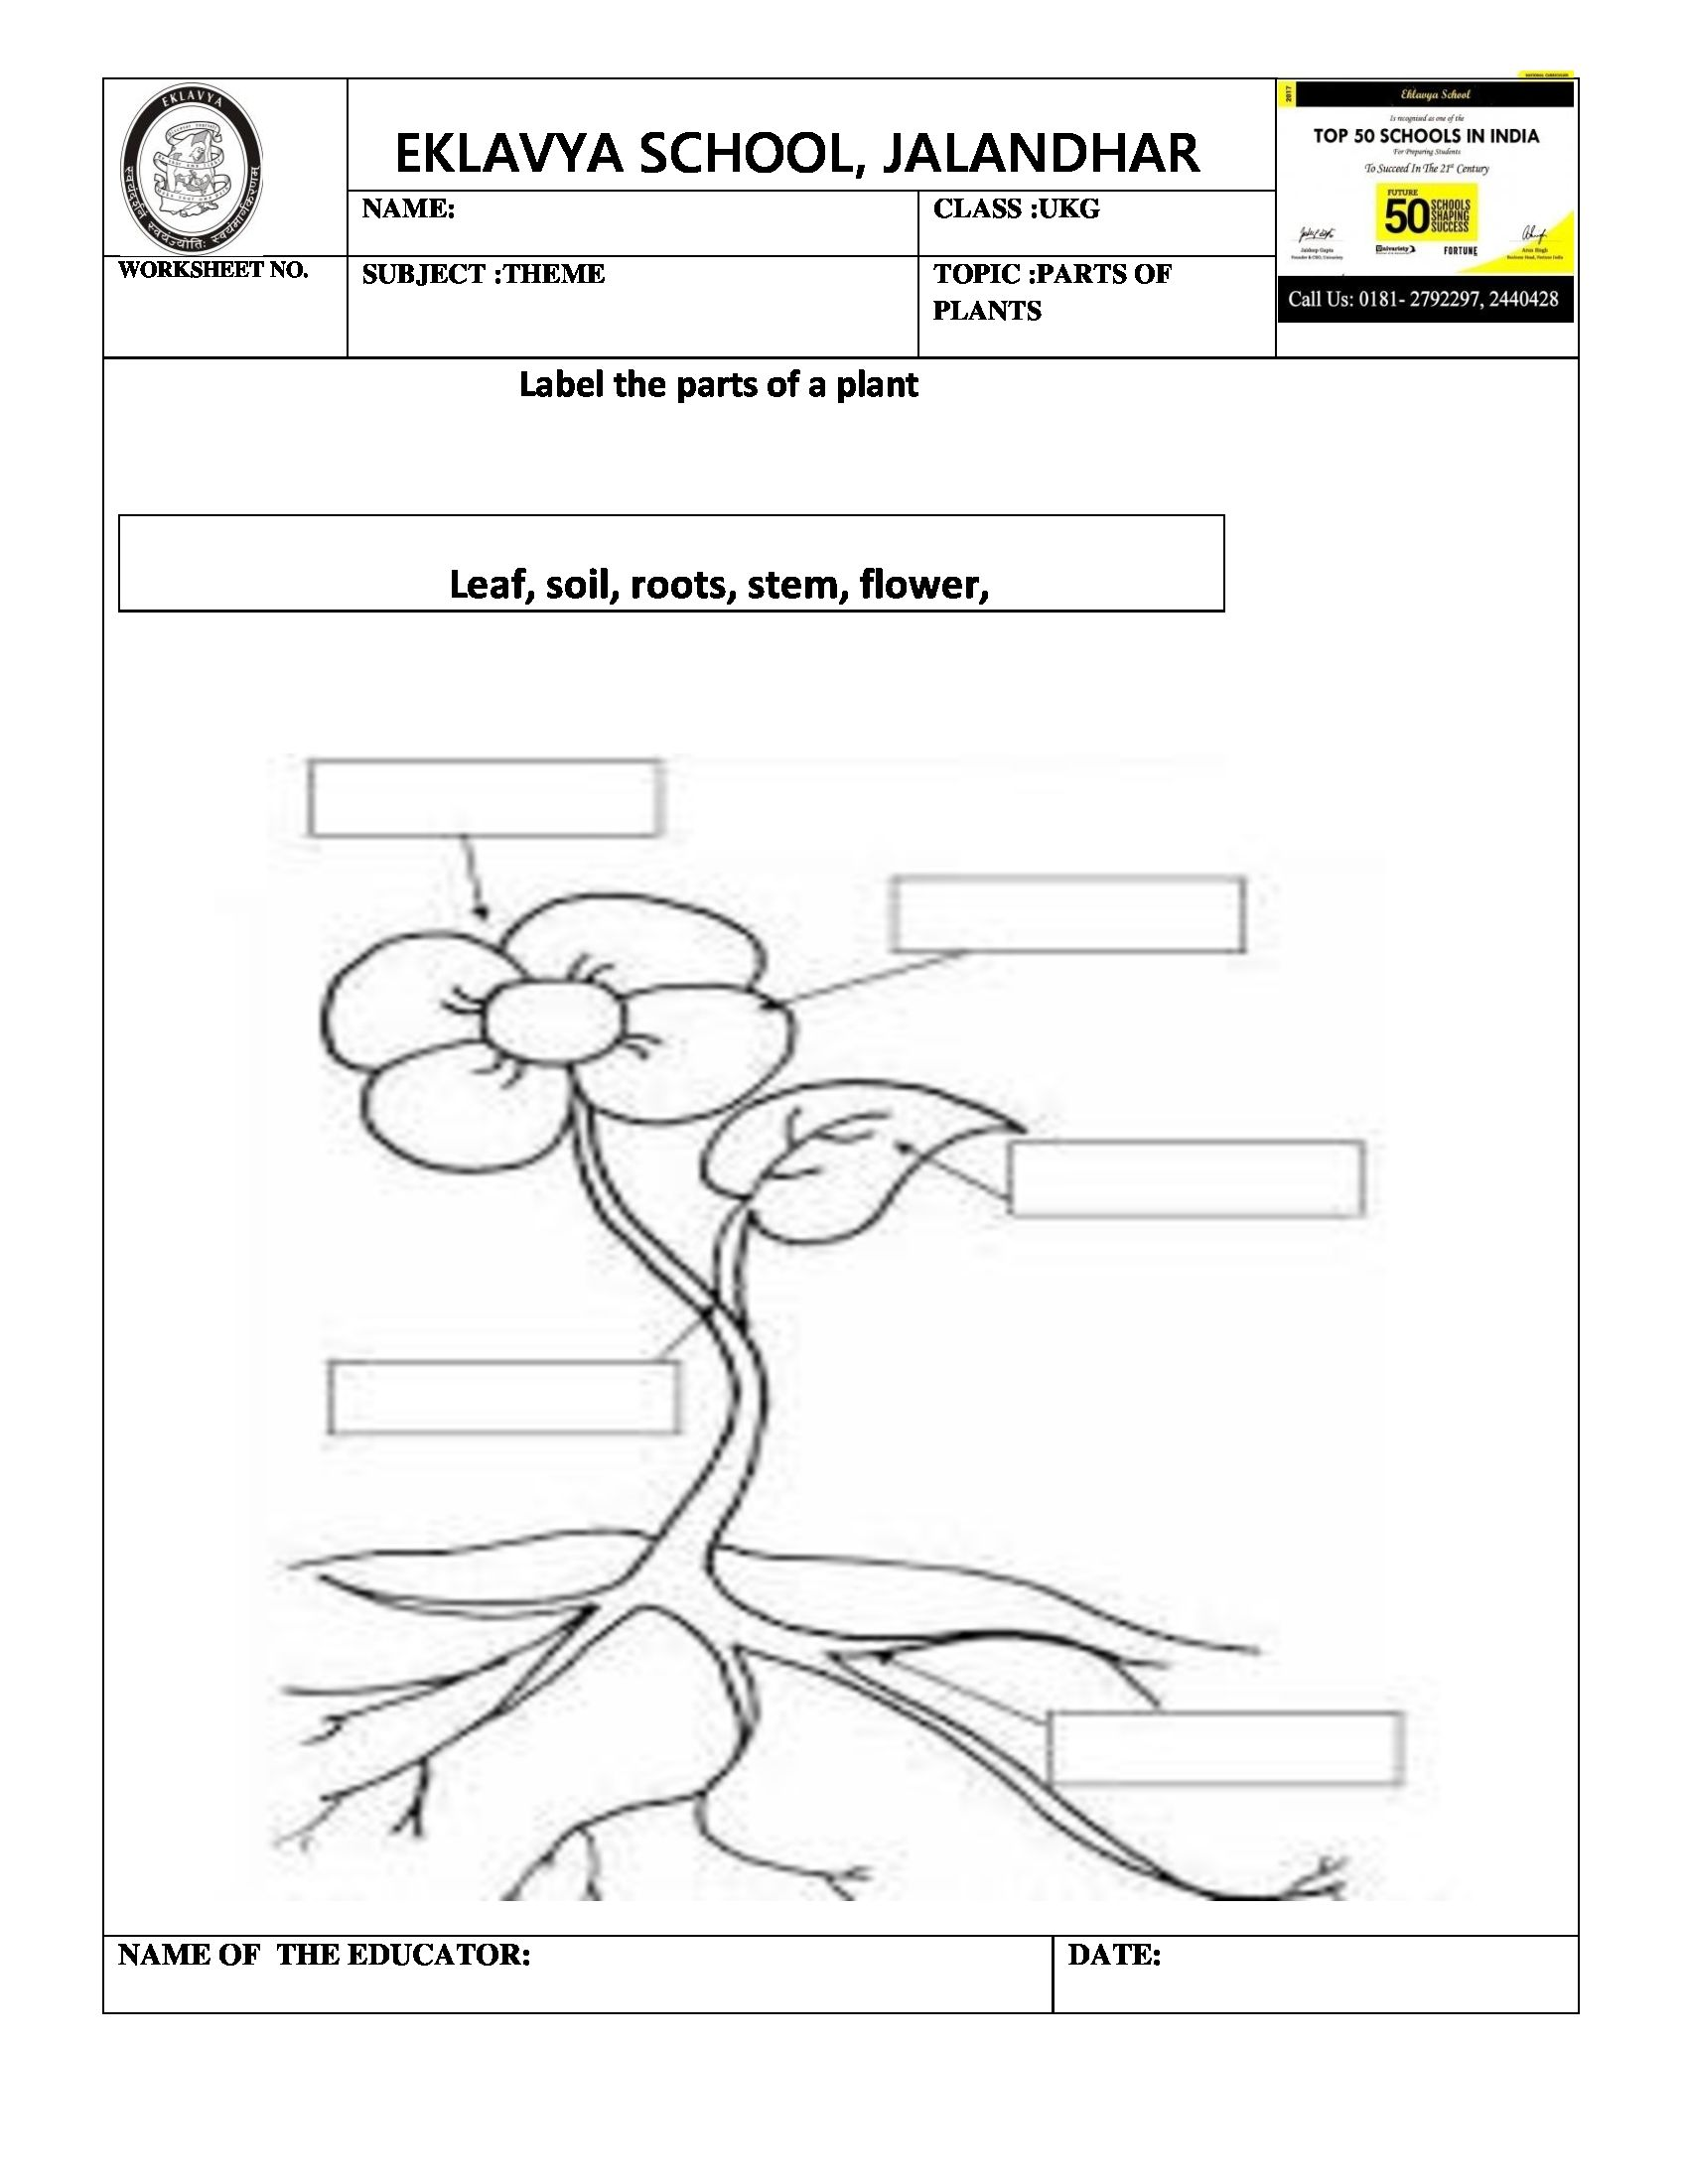 Worksheet On Parts Of Plants